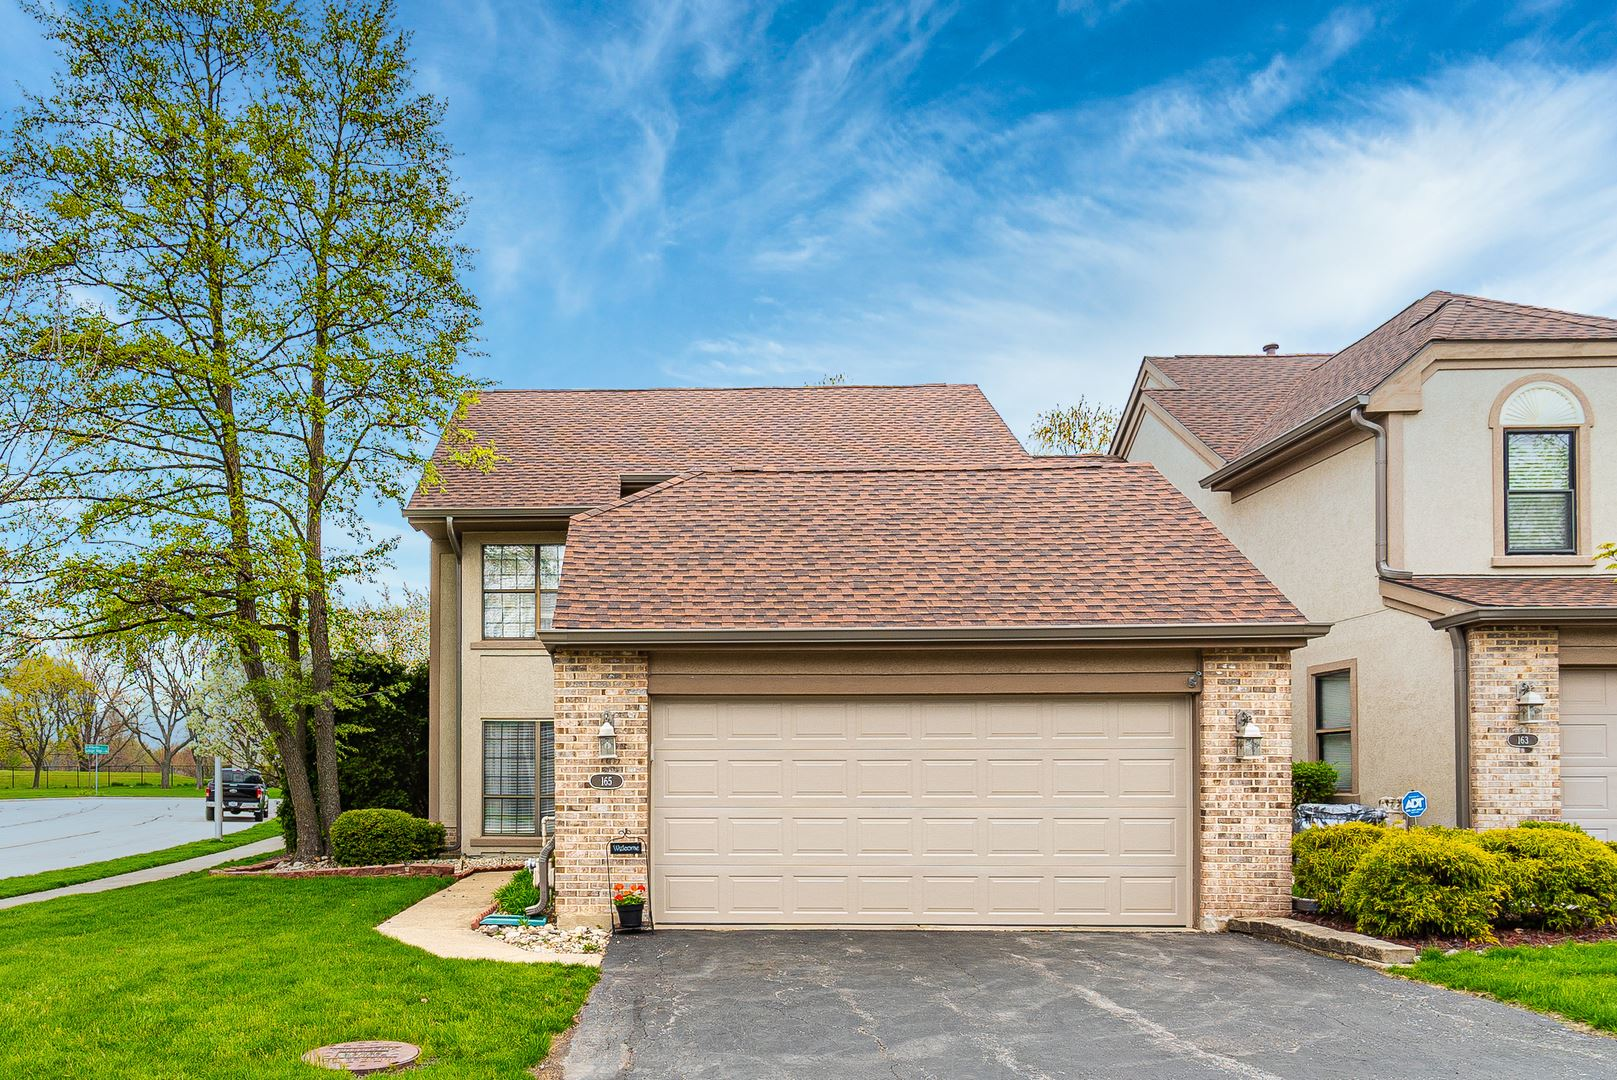 165 CHATSWORTH Circle, Schaumburg, IL 60194 - #: 10749065